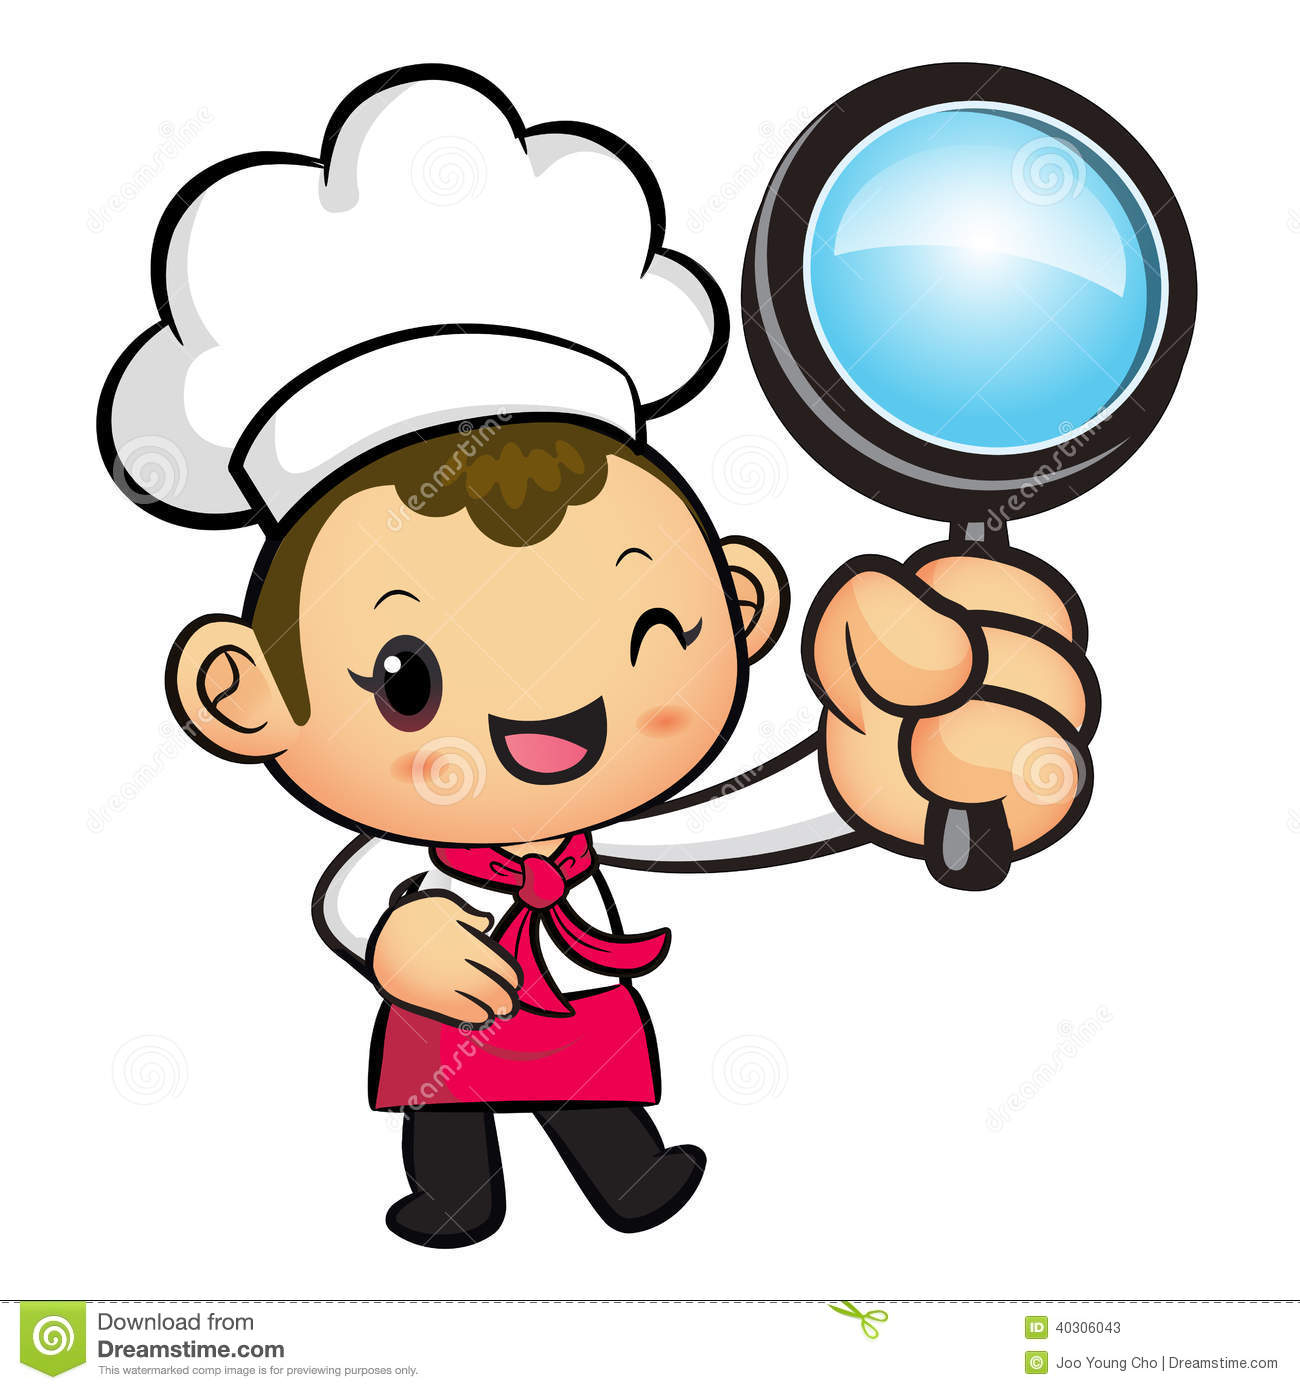 Character Design Job Offer : Chef mascot examine a with magnifying glass work and